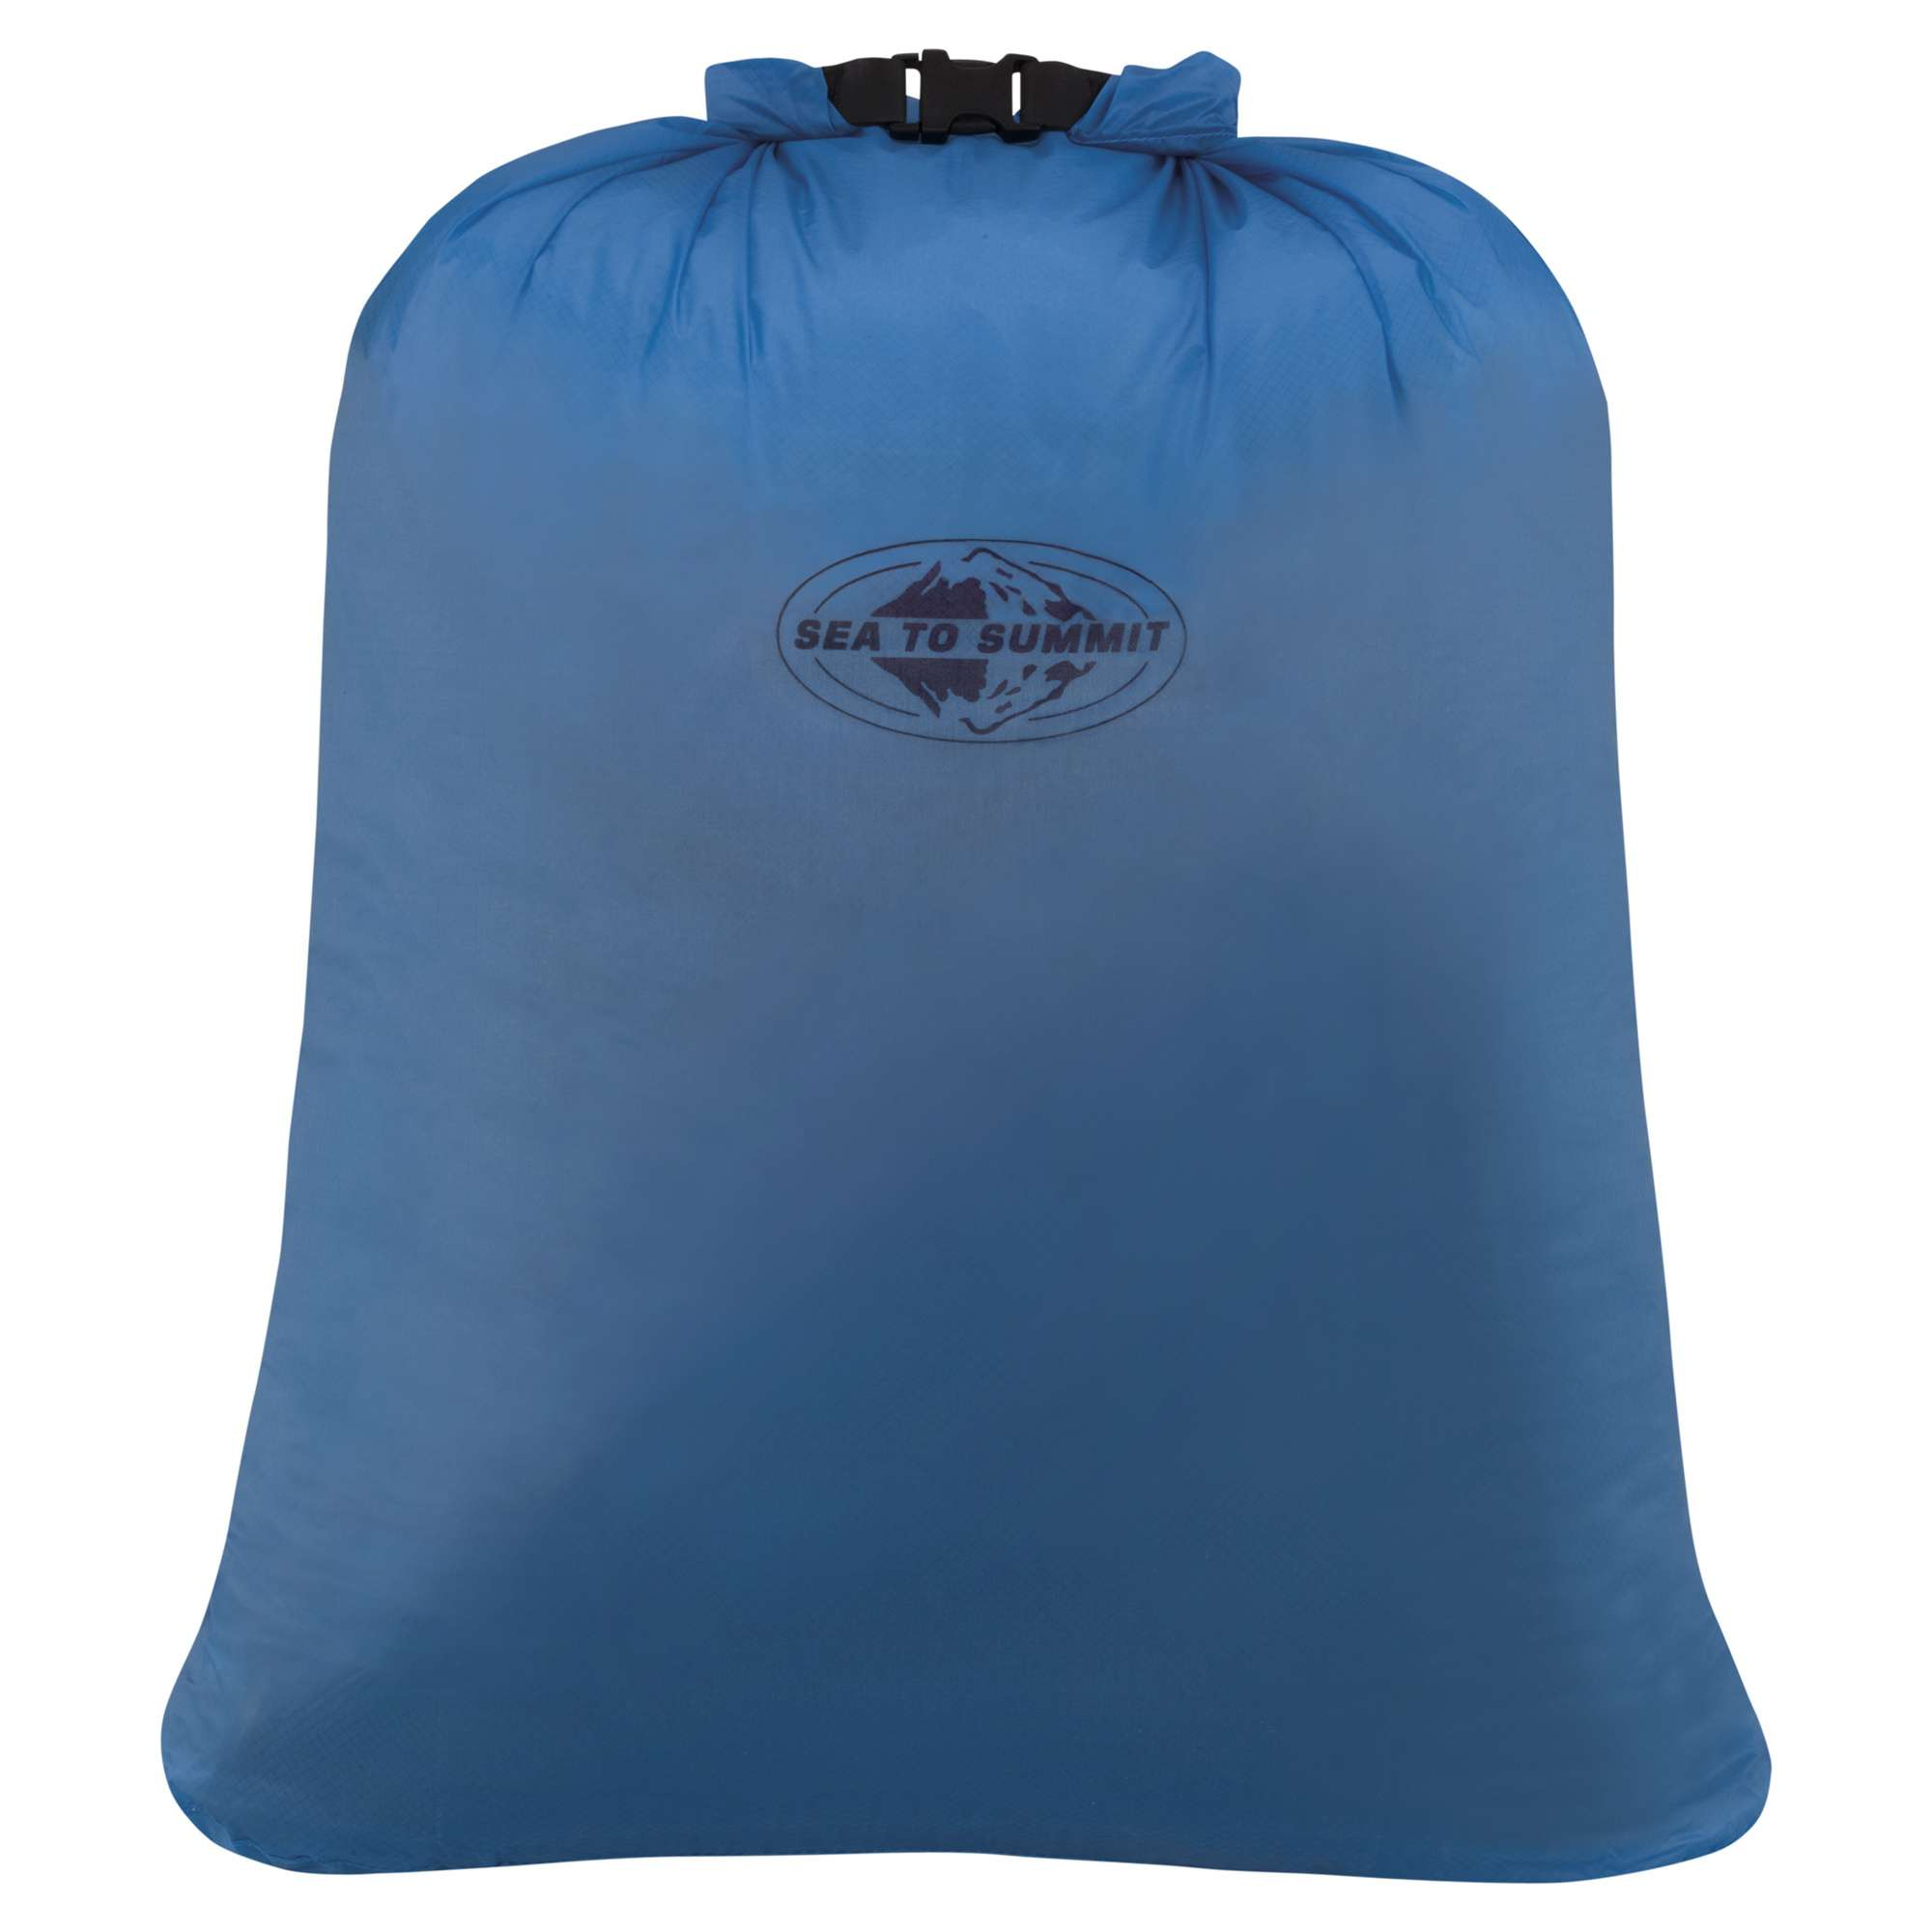 SEA TO SUMMIT Pack Liner - S